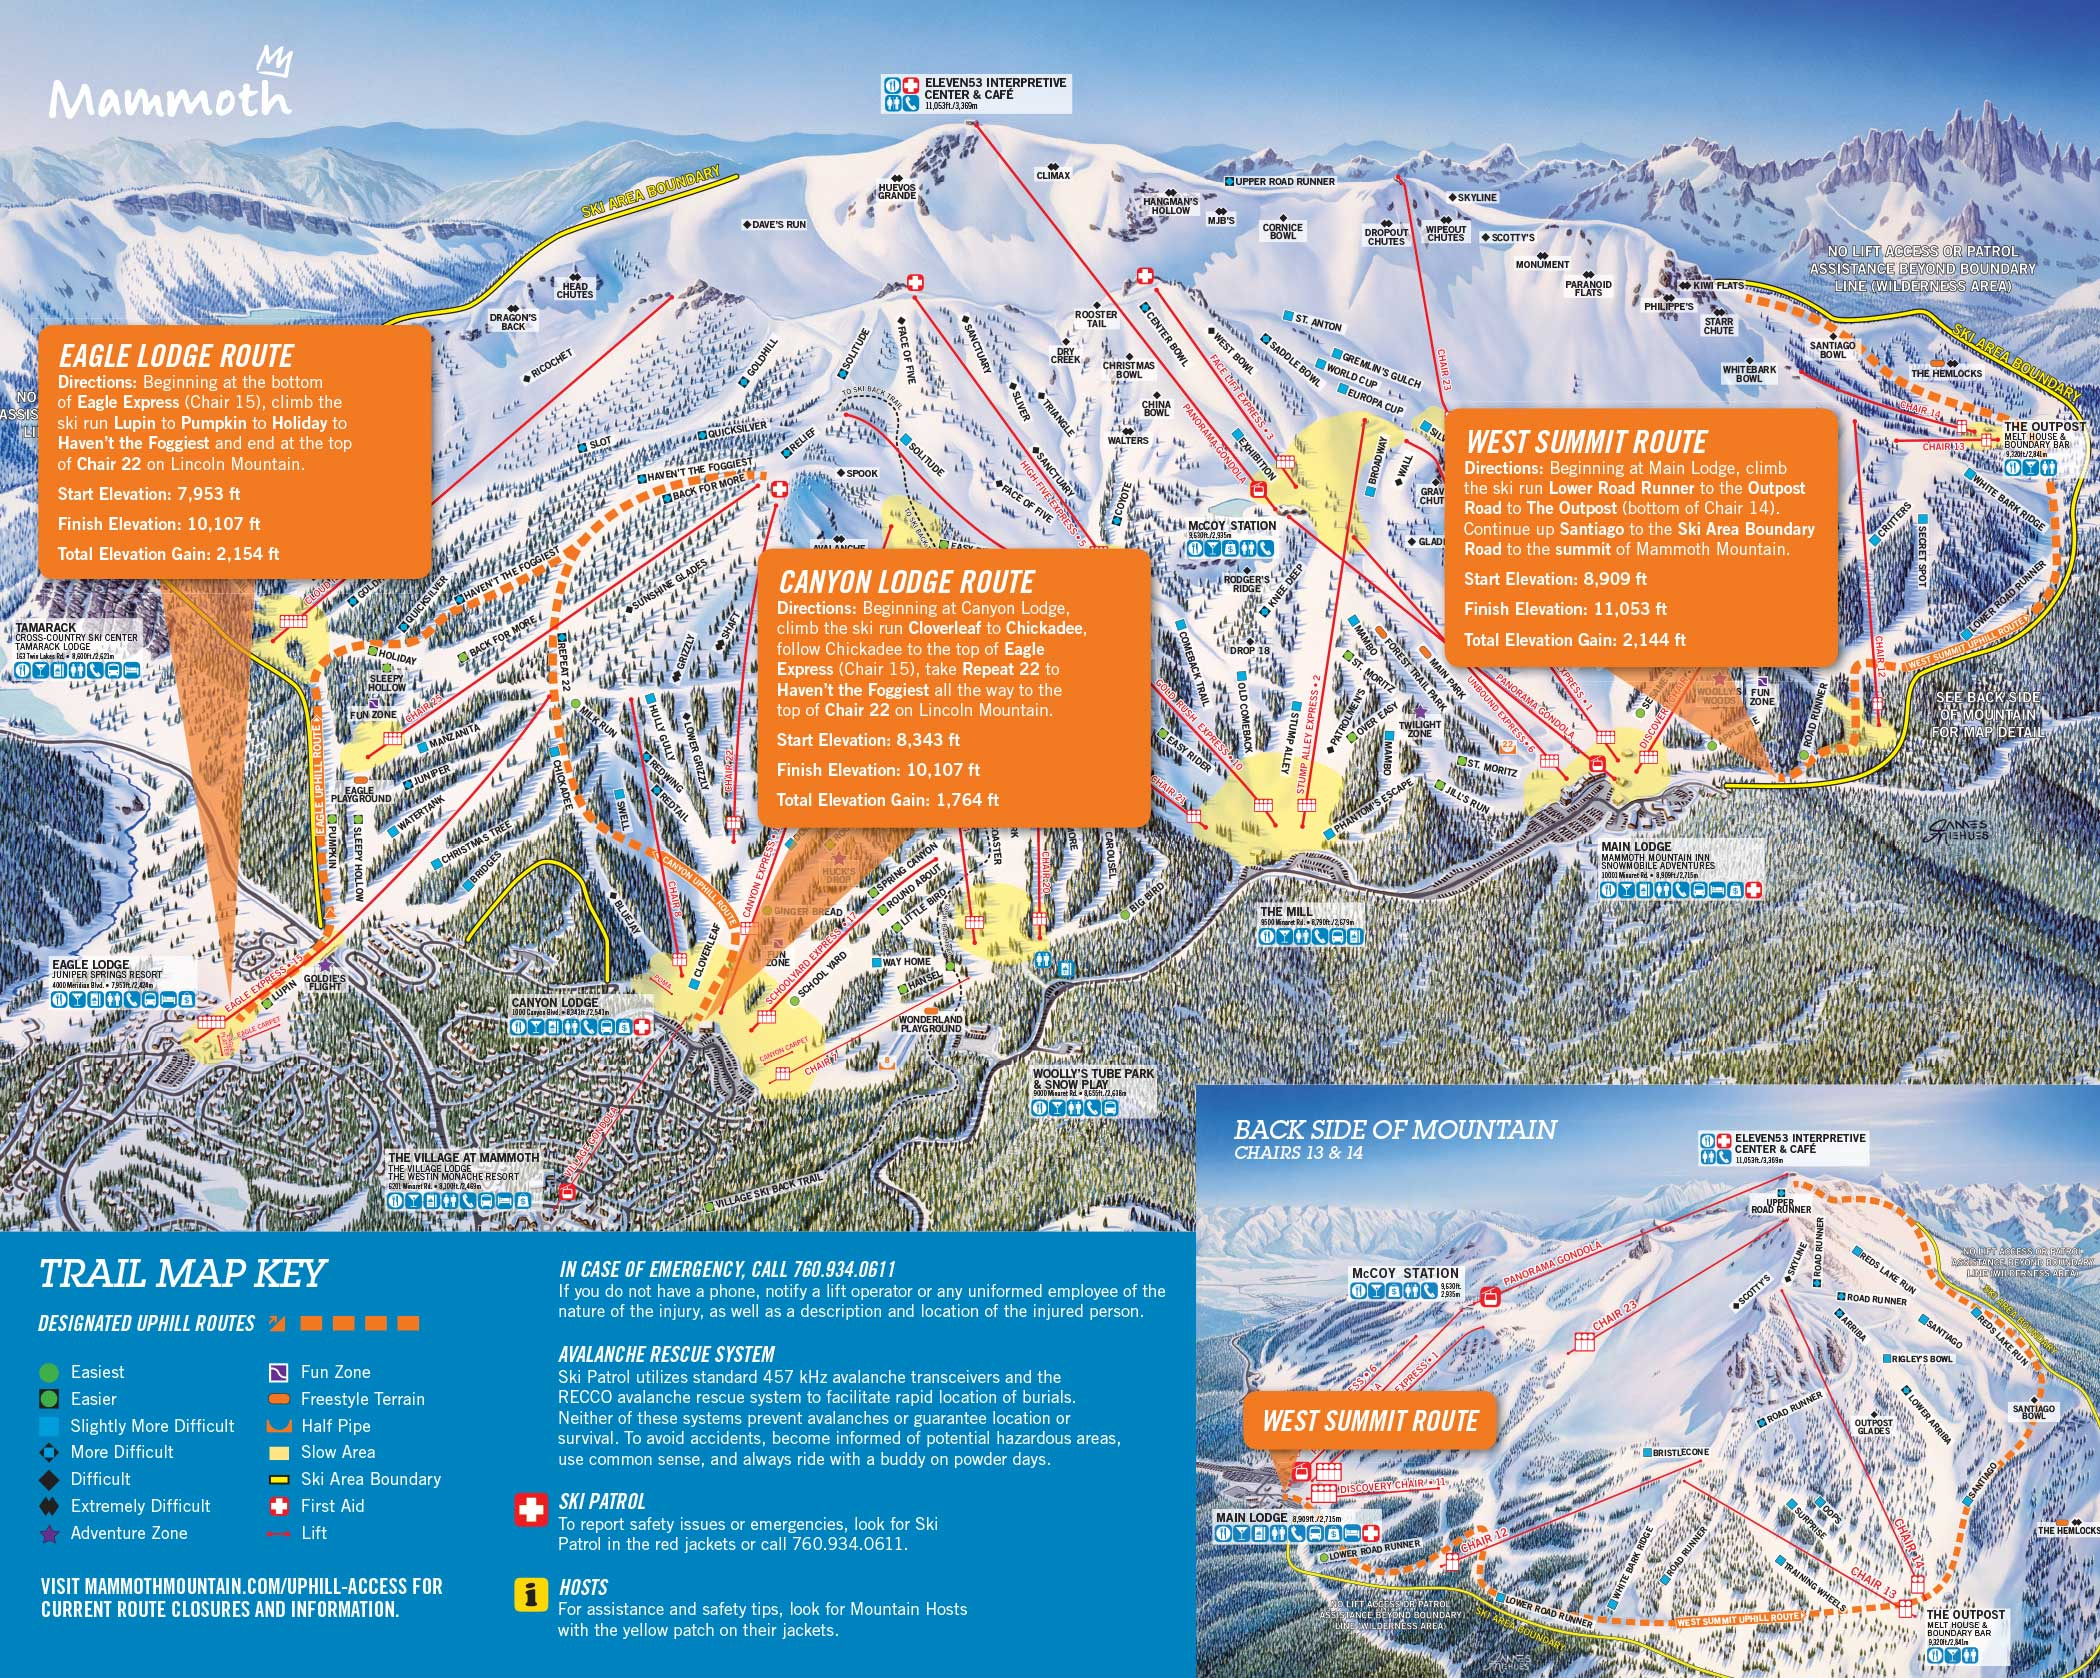 Uphill Skiing Trail Map